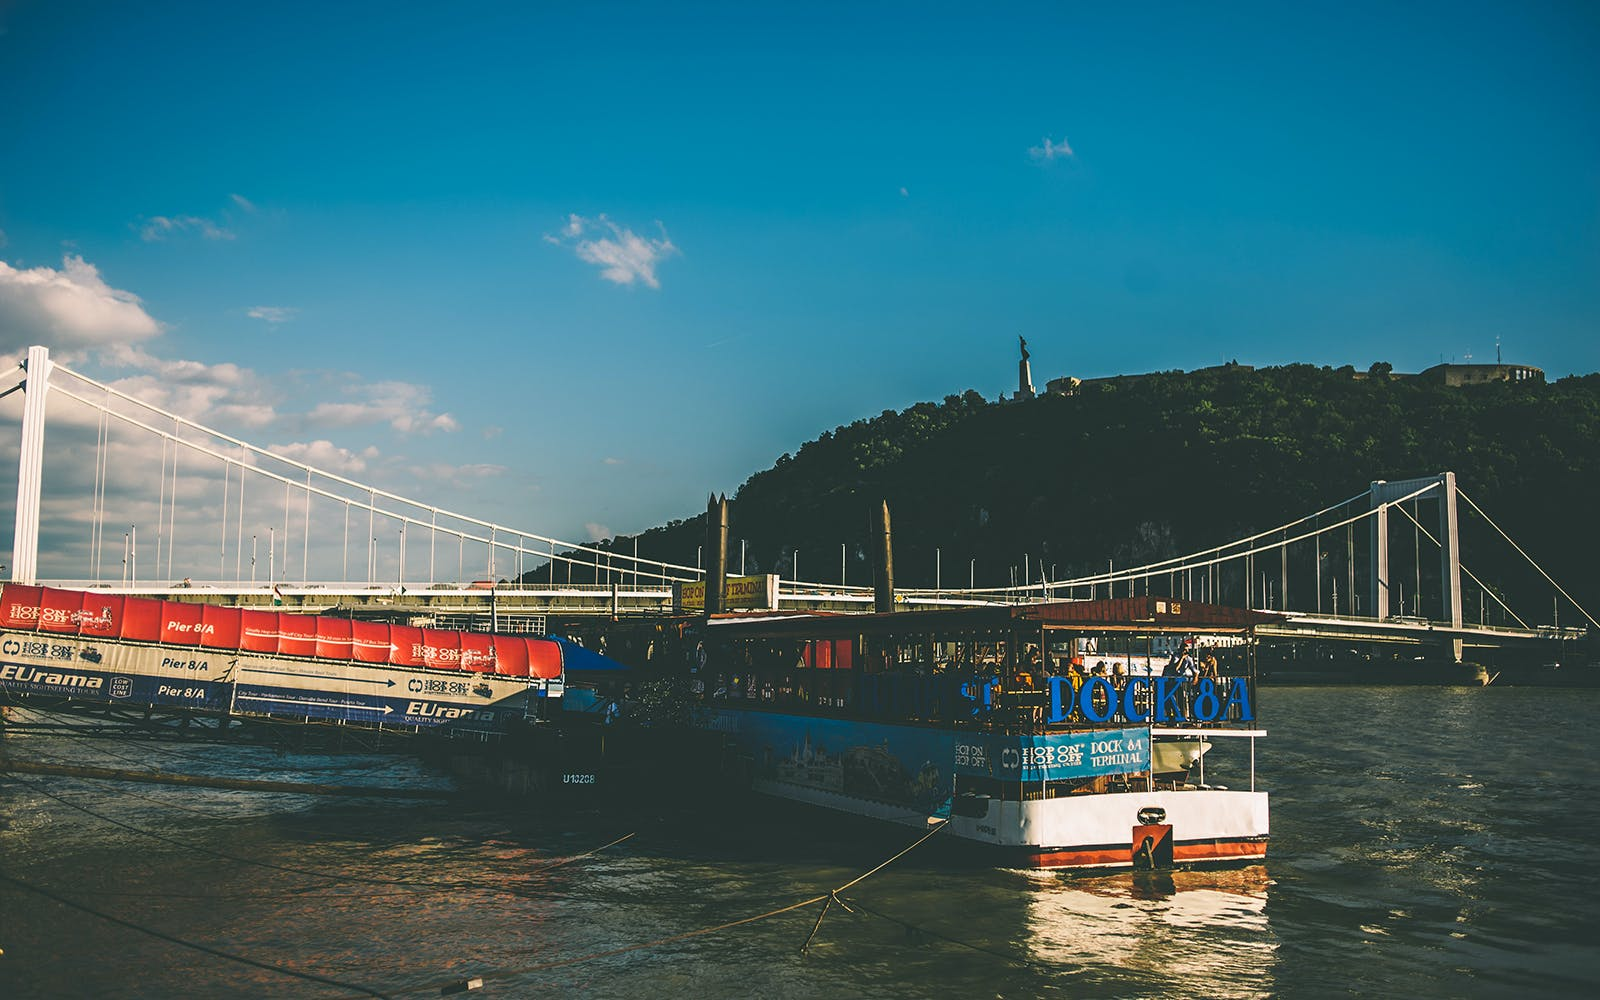 budapest river sightseeing cruise with drinks-1